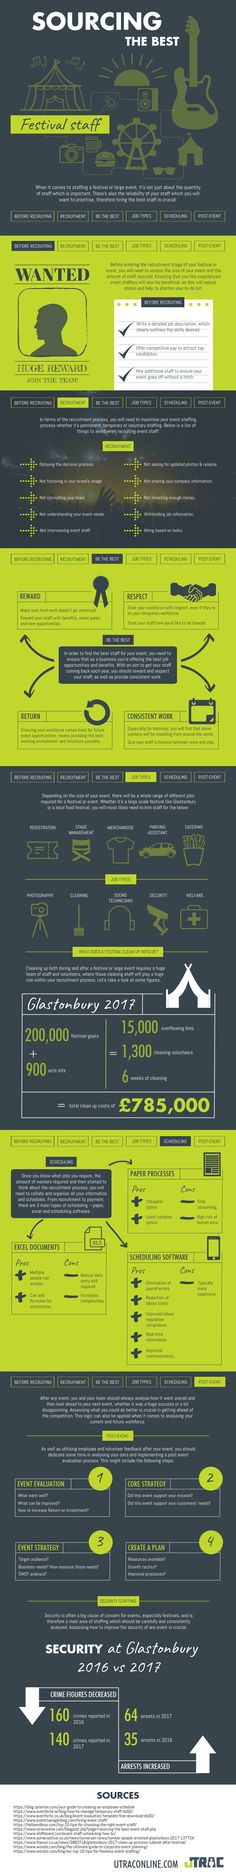 Looking to recruit for the festival and outdoor events season? Check out this infographic on 'How To Source The Best Festival Staff'...